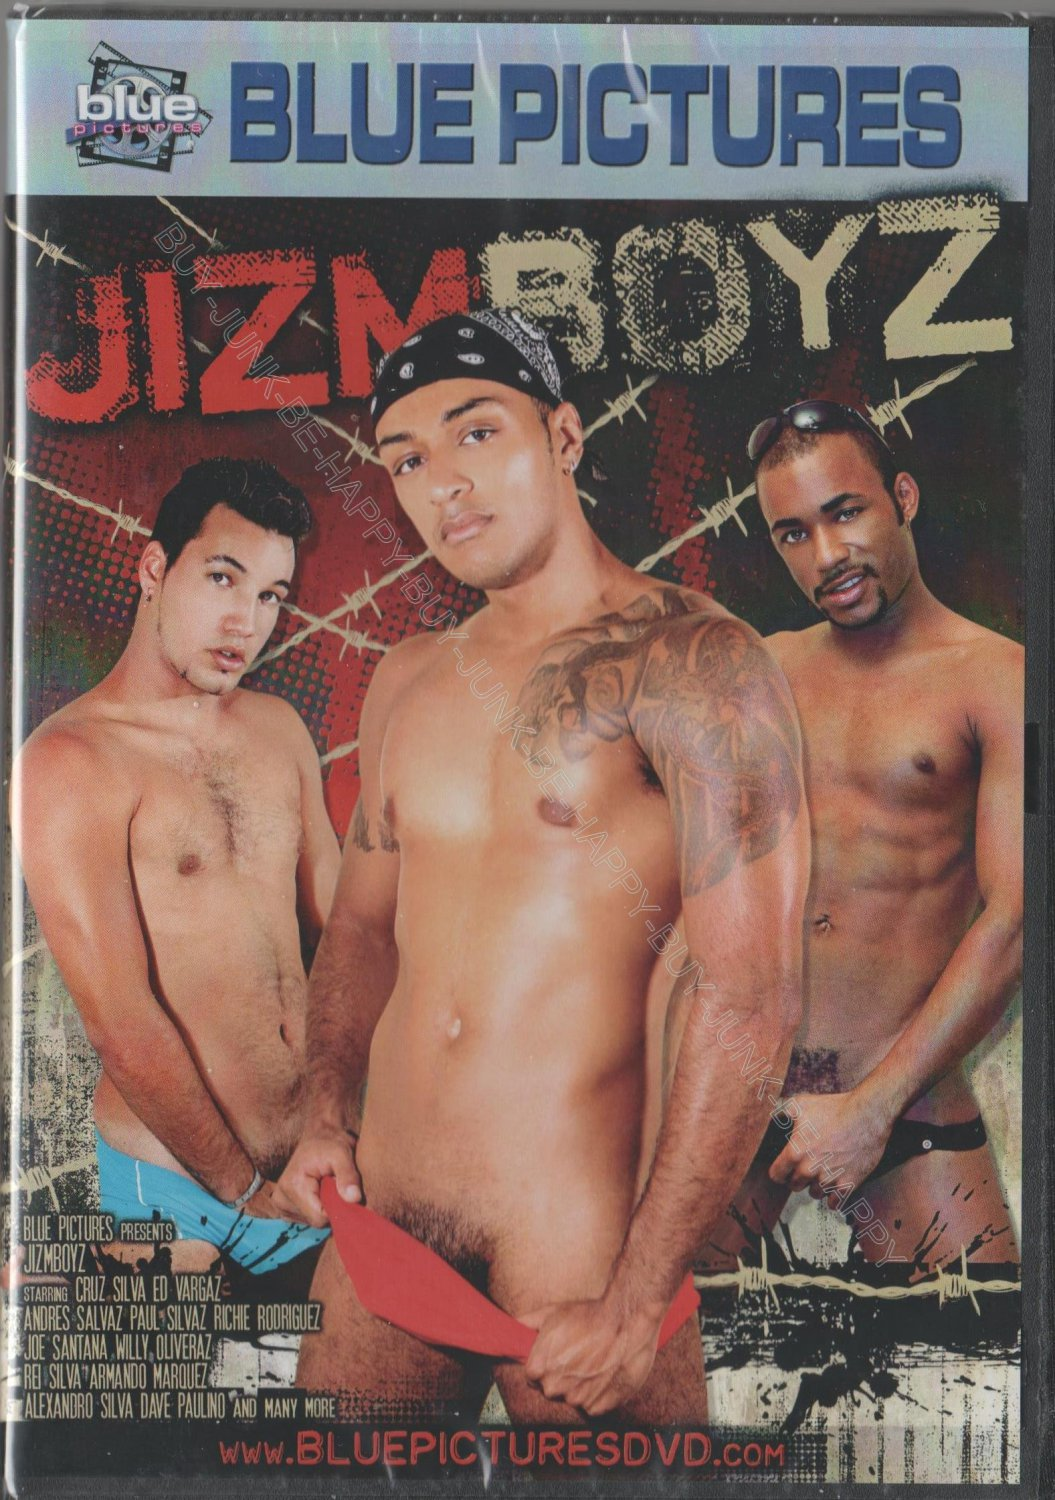 JIZM BOYS {Adult New} BLUE PICTURES GAY PLAY ROUGH BOYS, GET A LITTLE DL ACTION